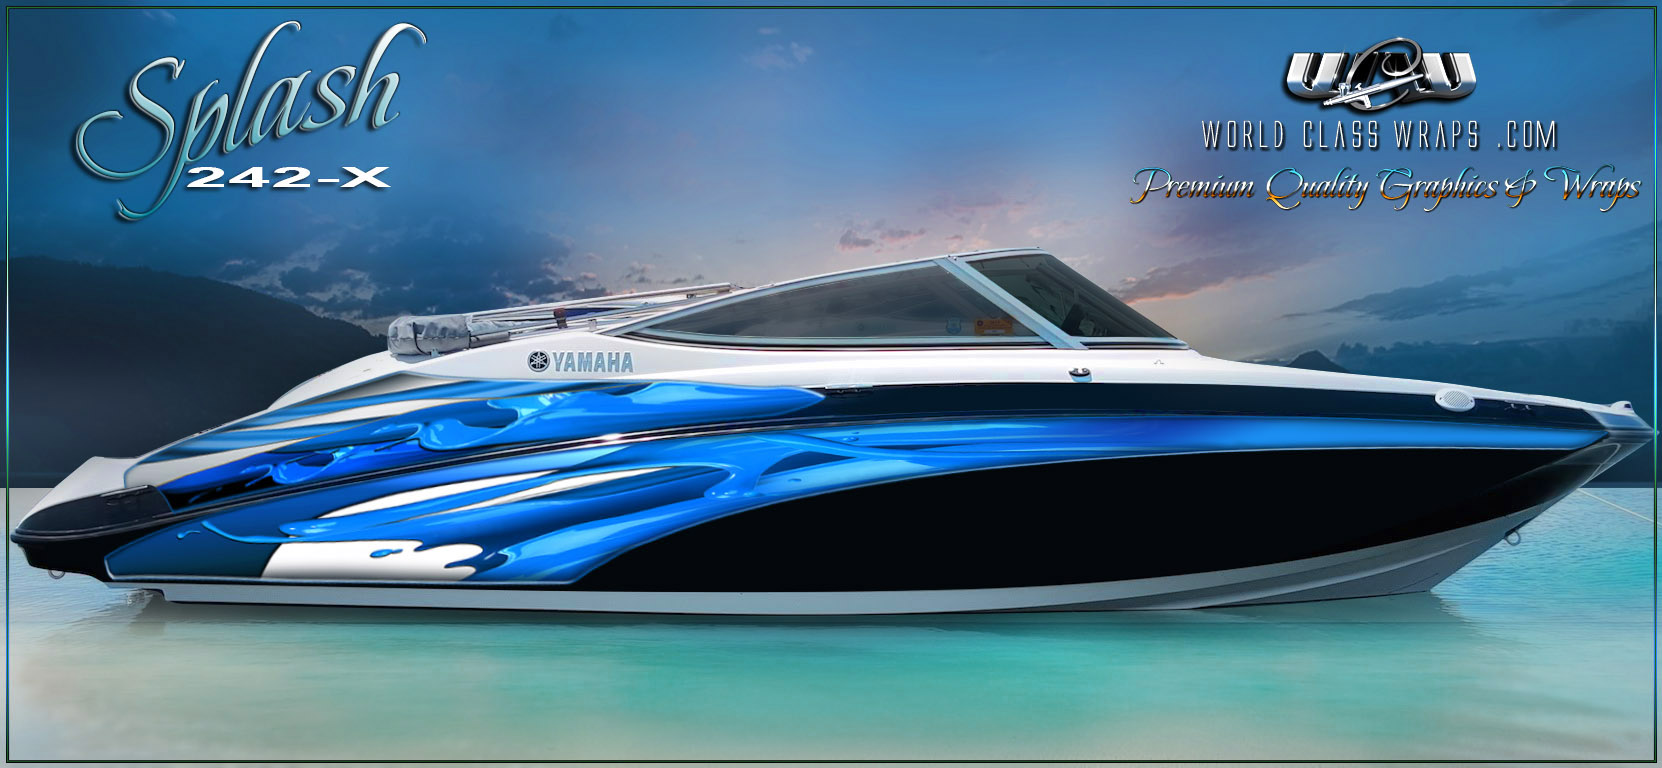 yamaha side by side 2016 motorcycle review and galleries colorful boat graphics 63438 - Boat Graphics Designs Ideas